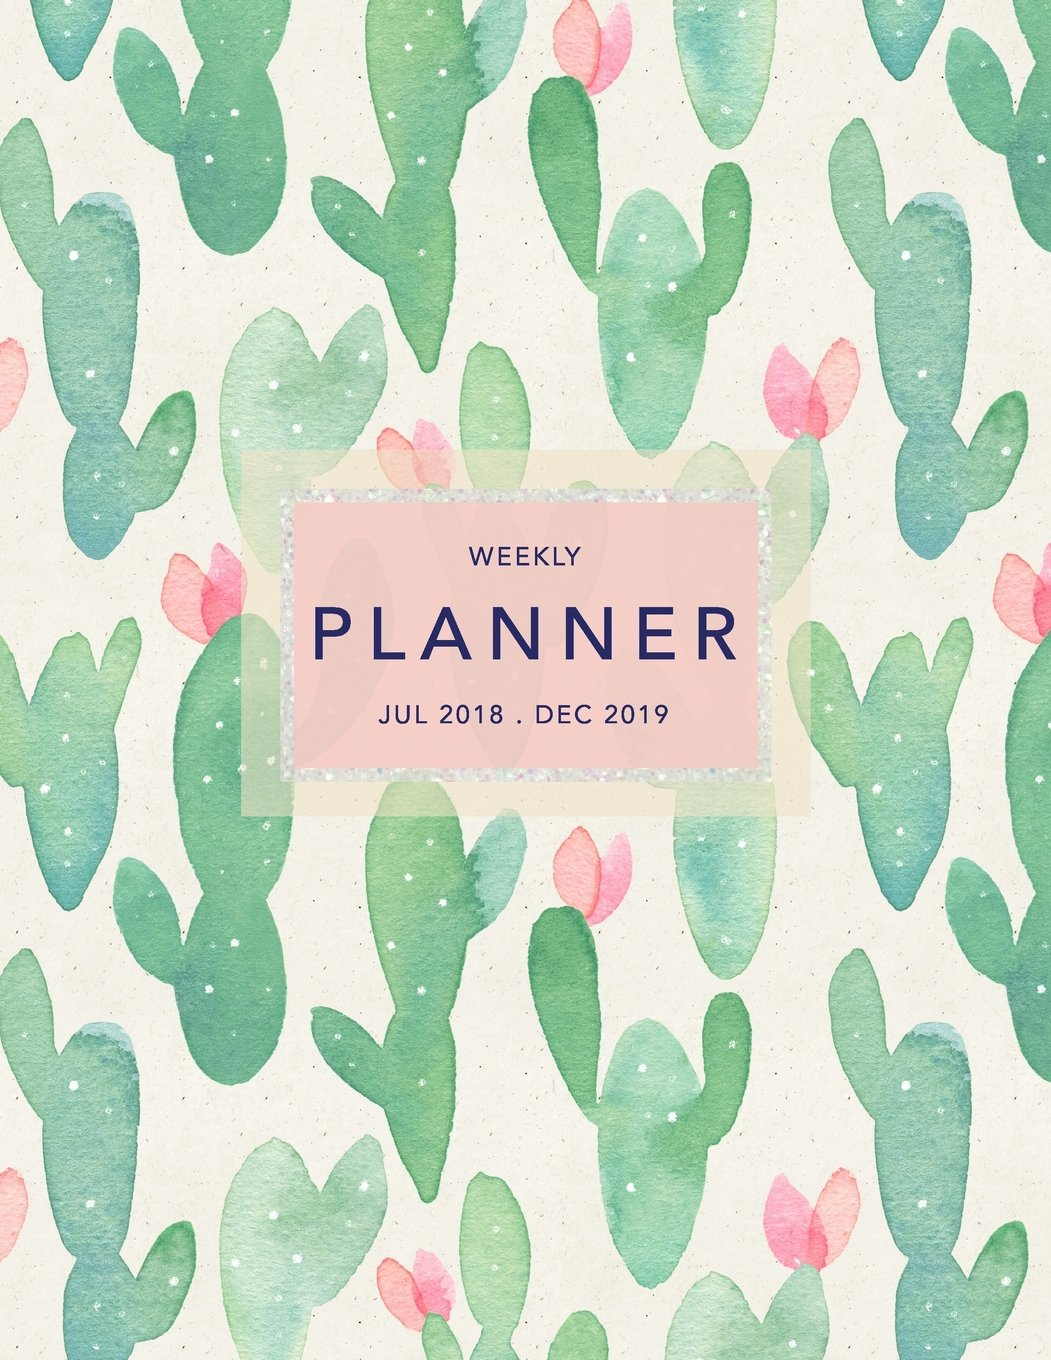 Weekly Planner 2018-2019: Cactus Design | Jul 18 - Dec 19 ...